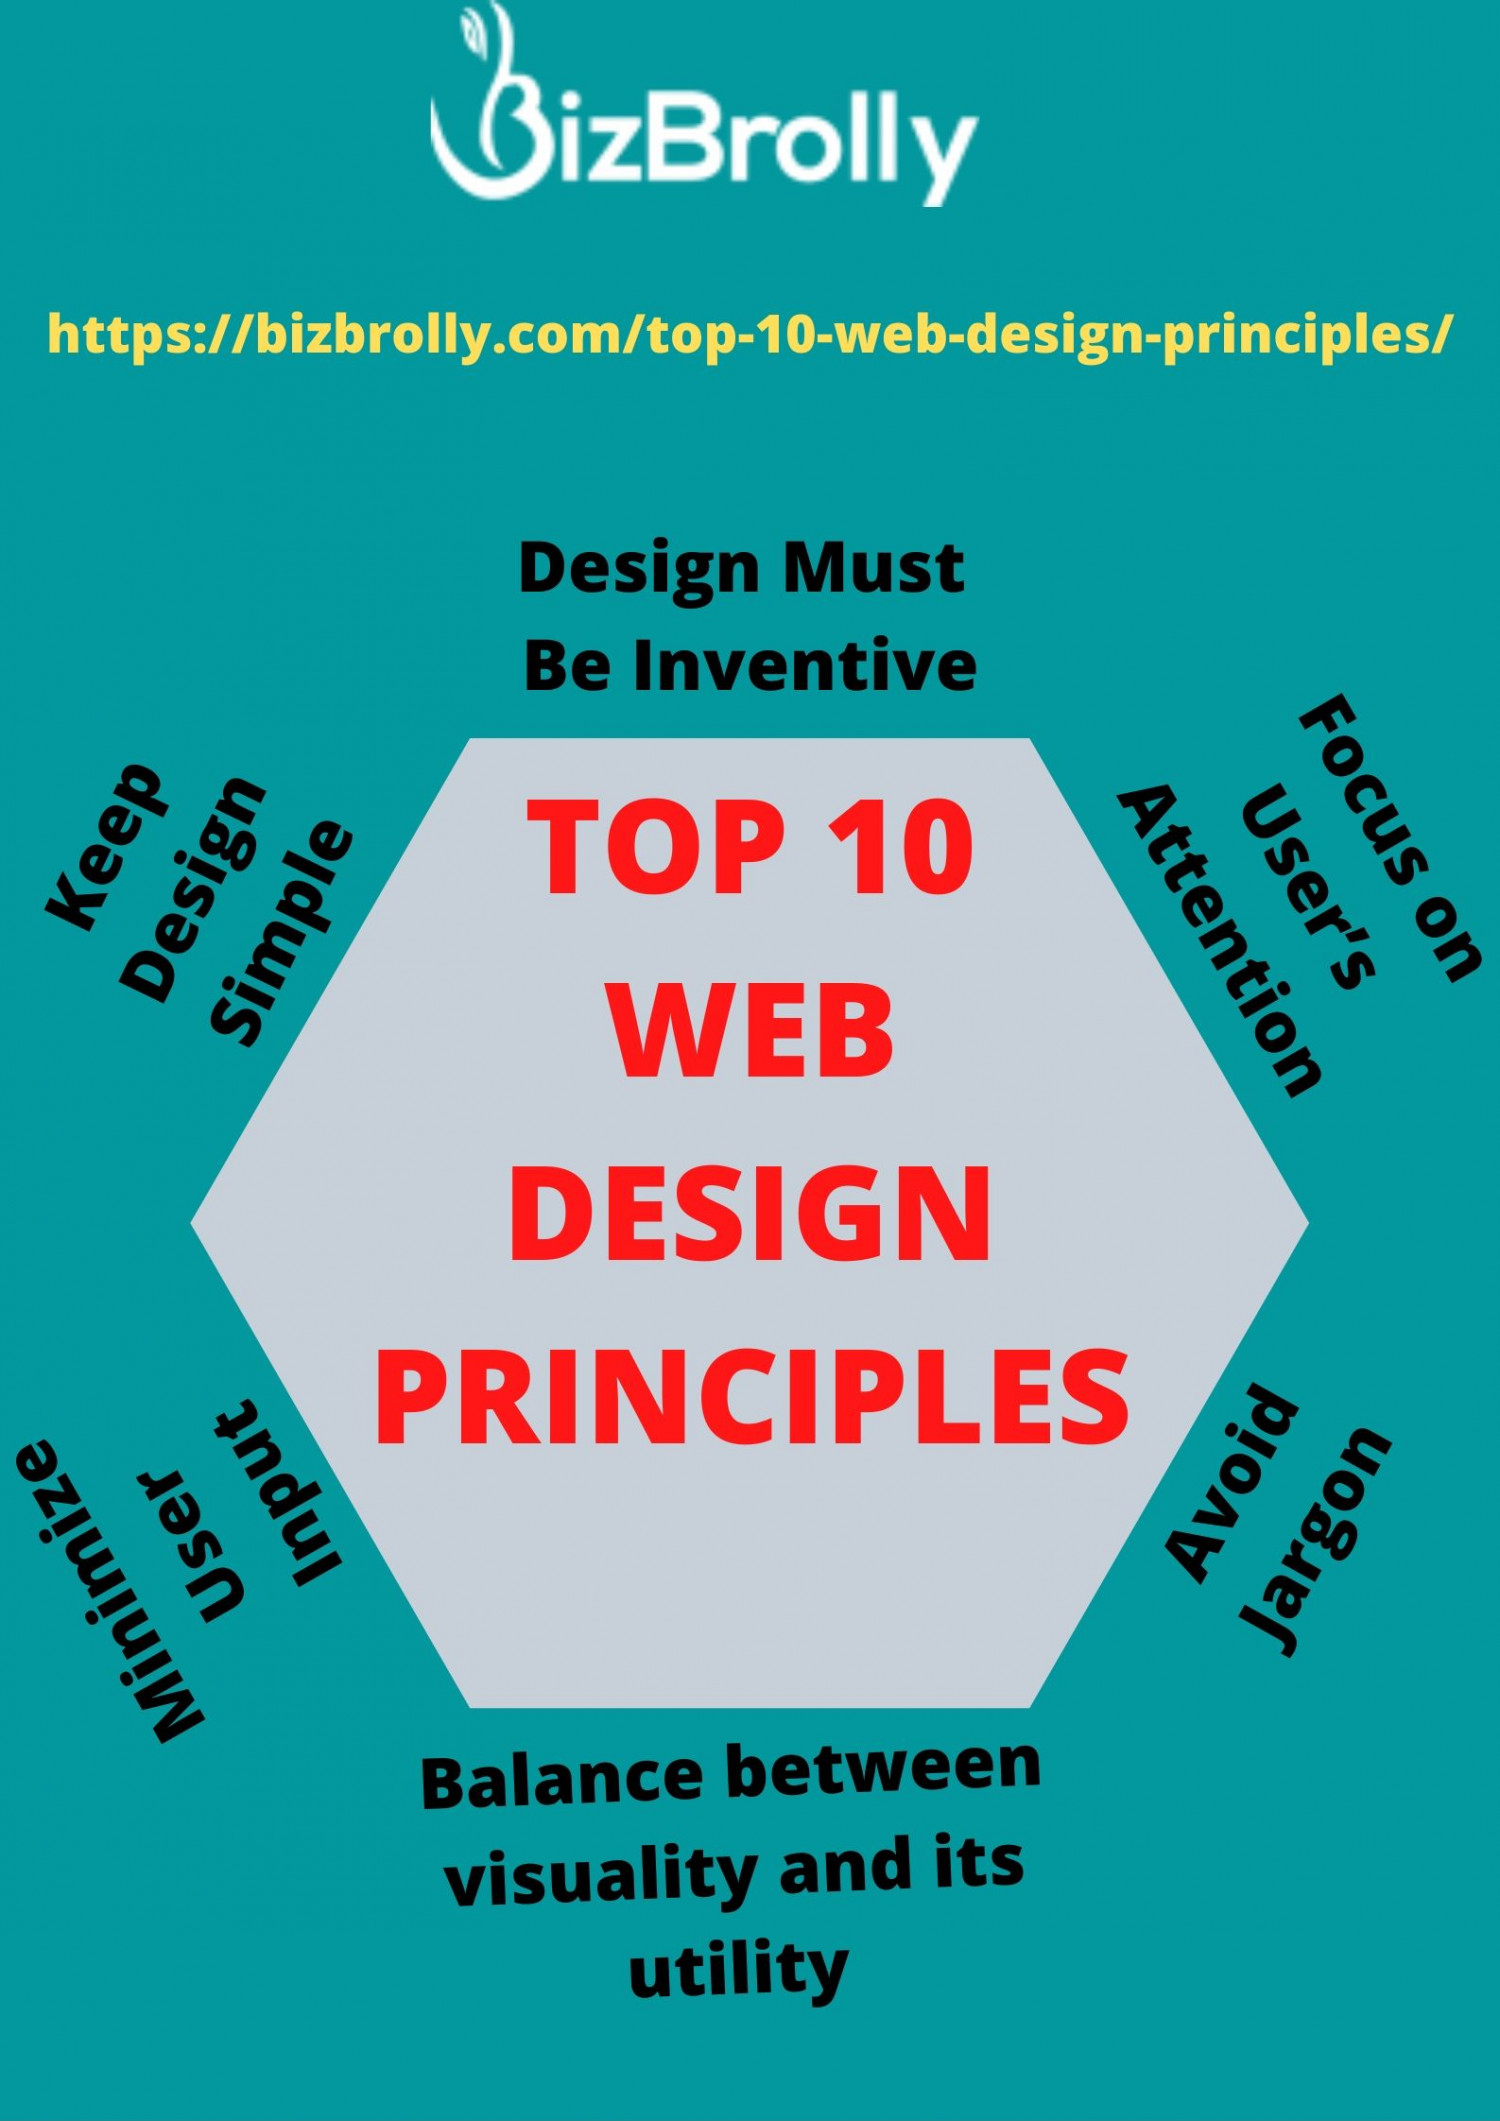 TOP WEB DESIGN PRINCIPLES Infographic